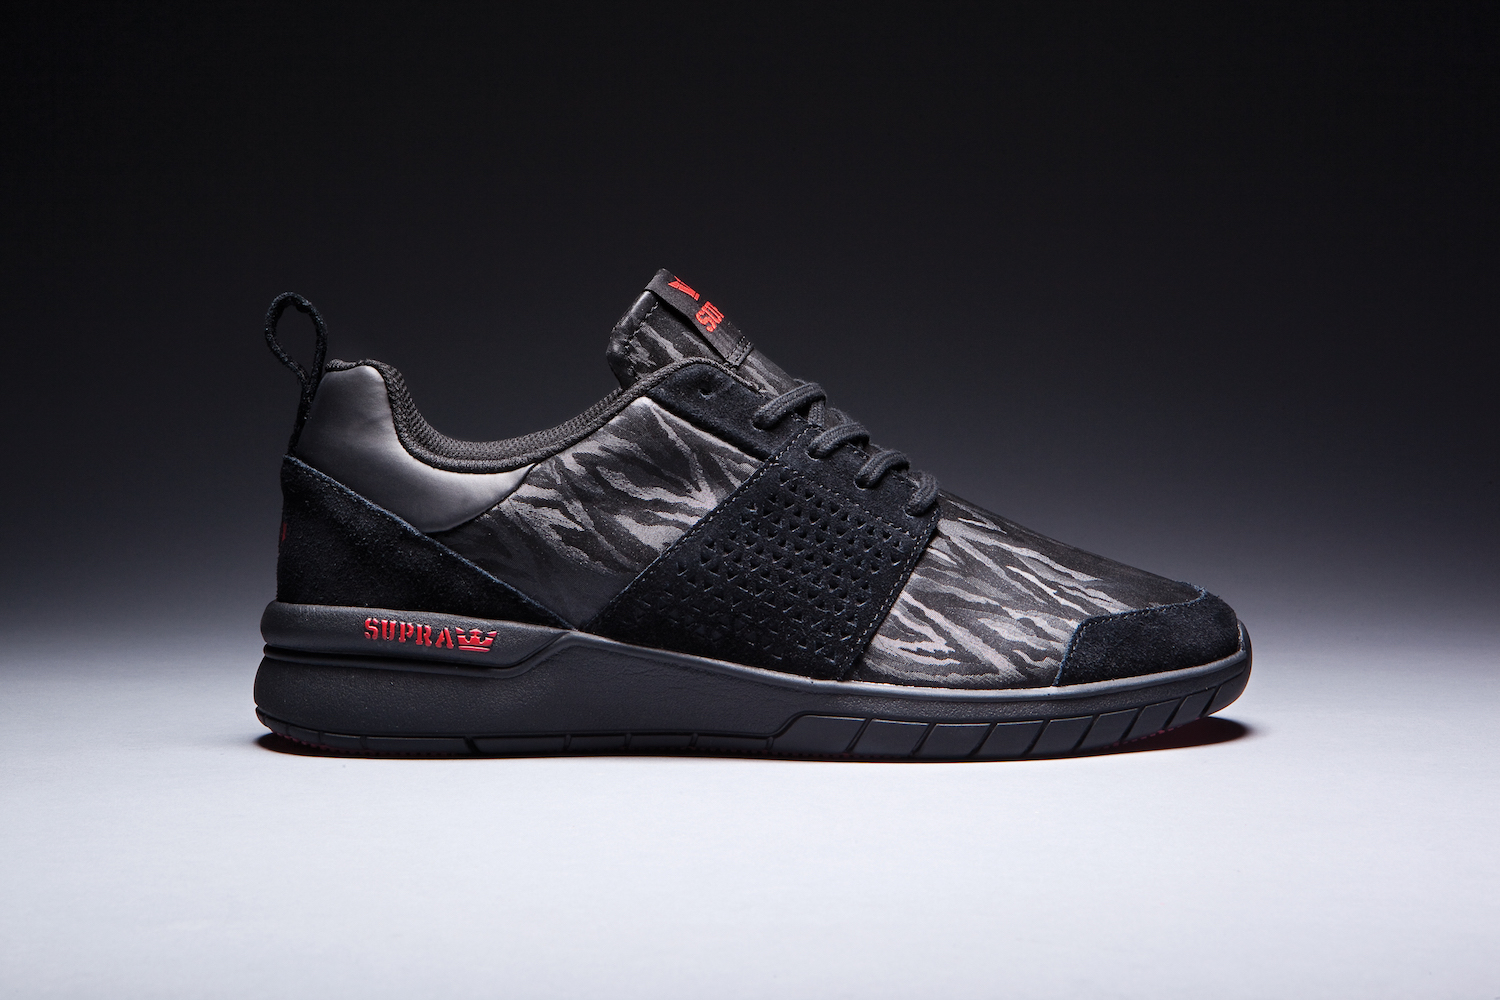 supra and assassins creed footwear collection 12